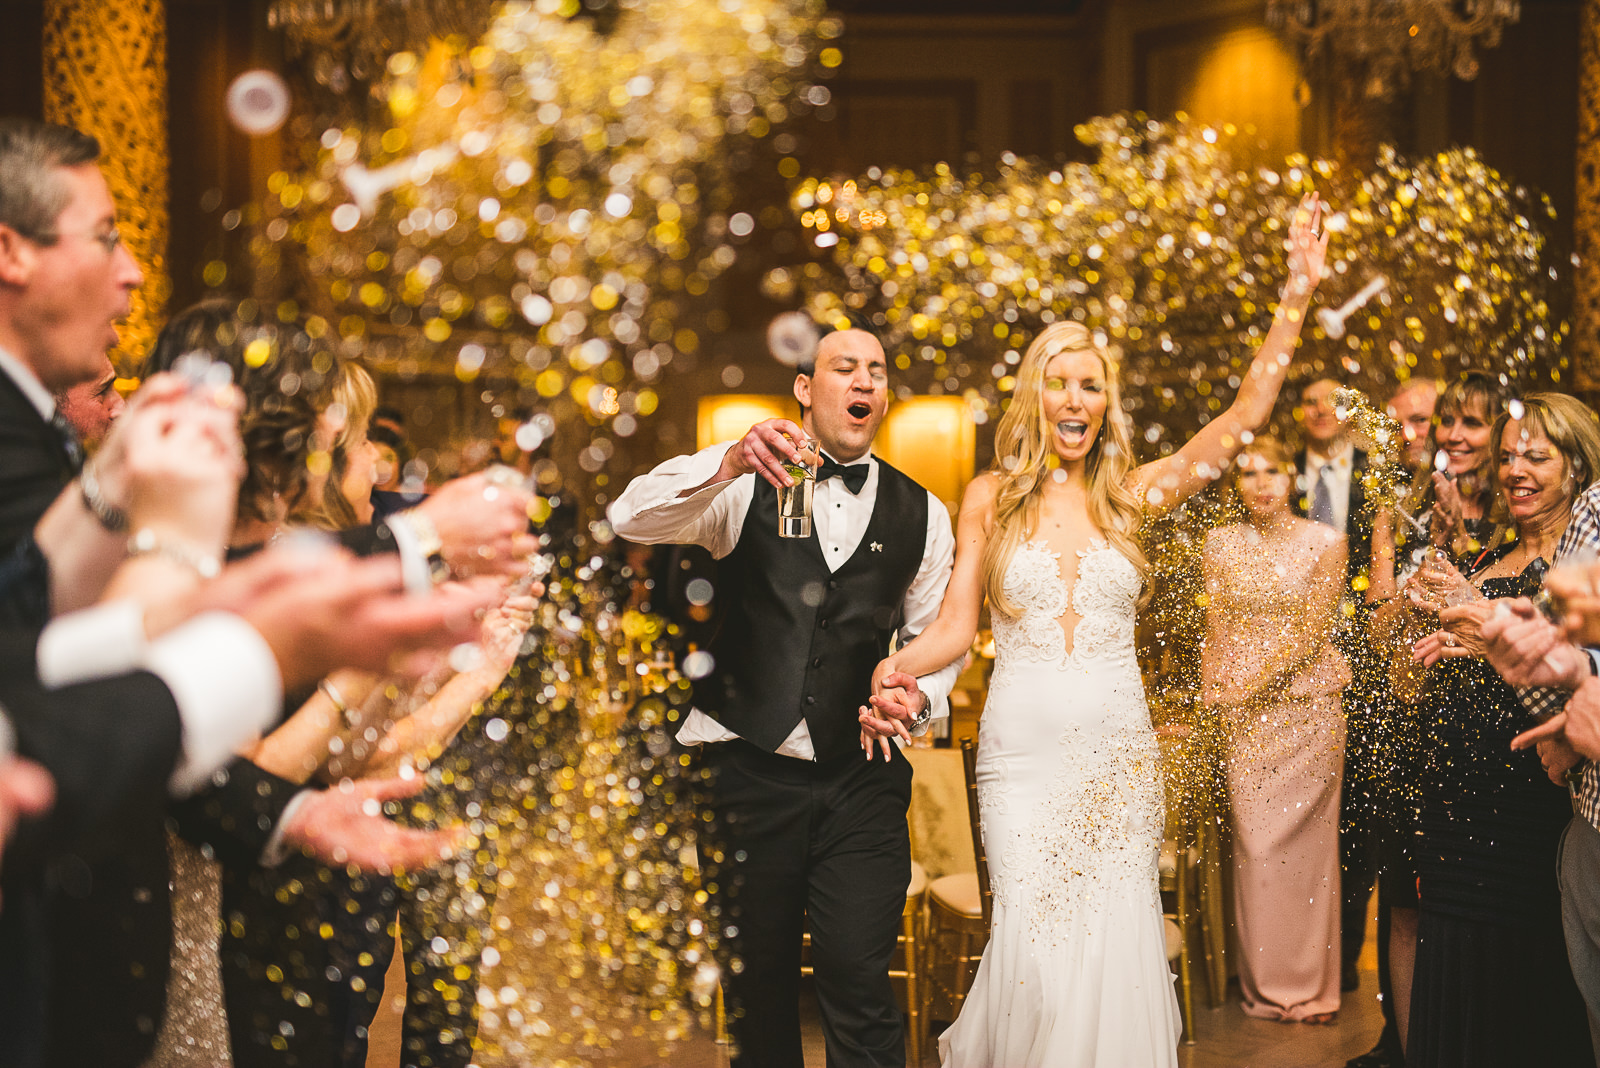 78 glitter exit at wedding - Kayla + Terry // Drake Hotel Chicago Wedding Photos